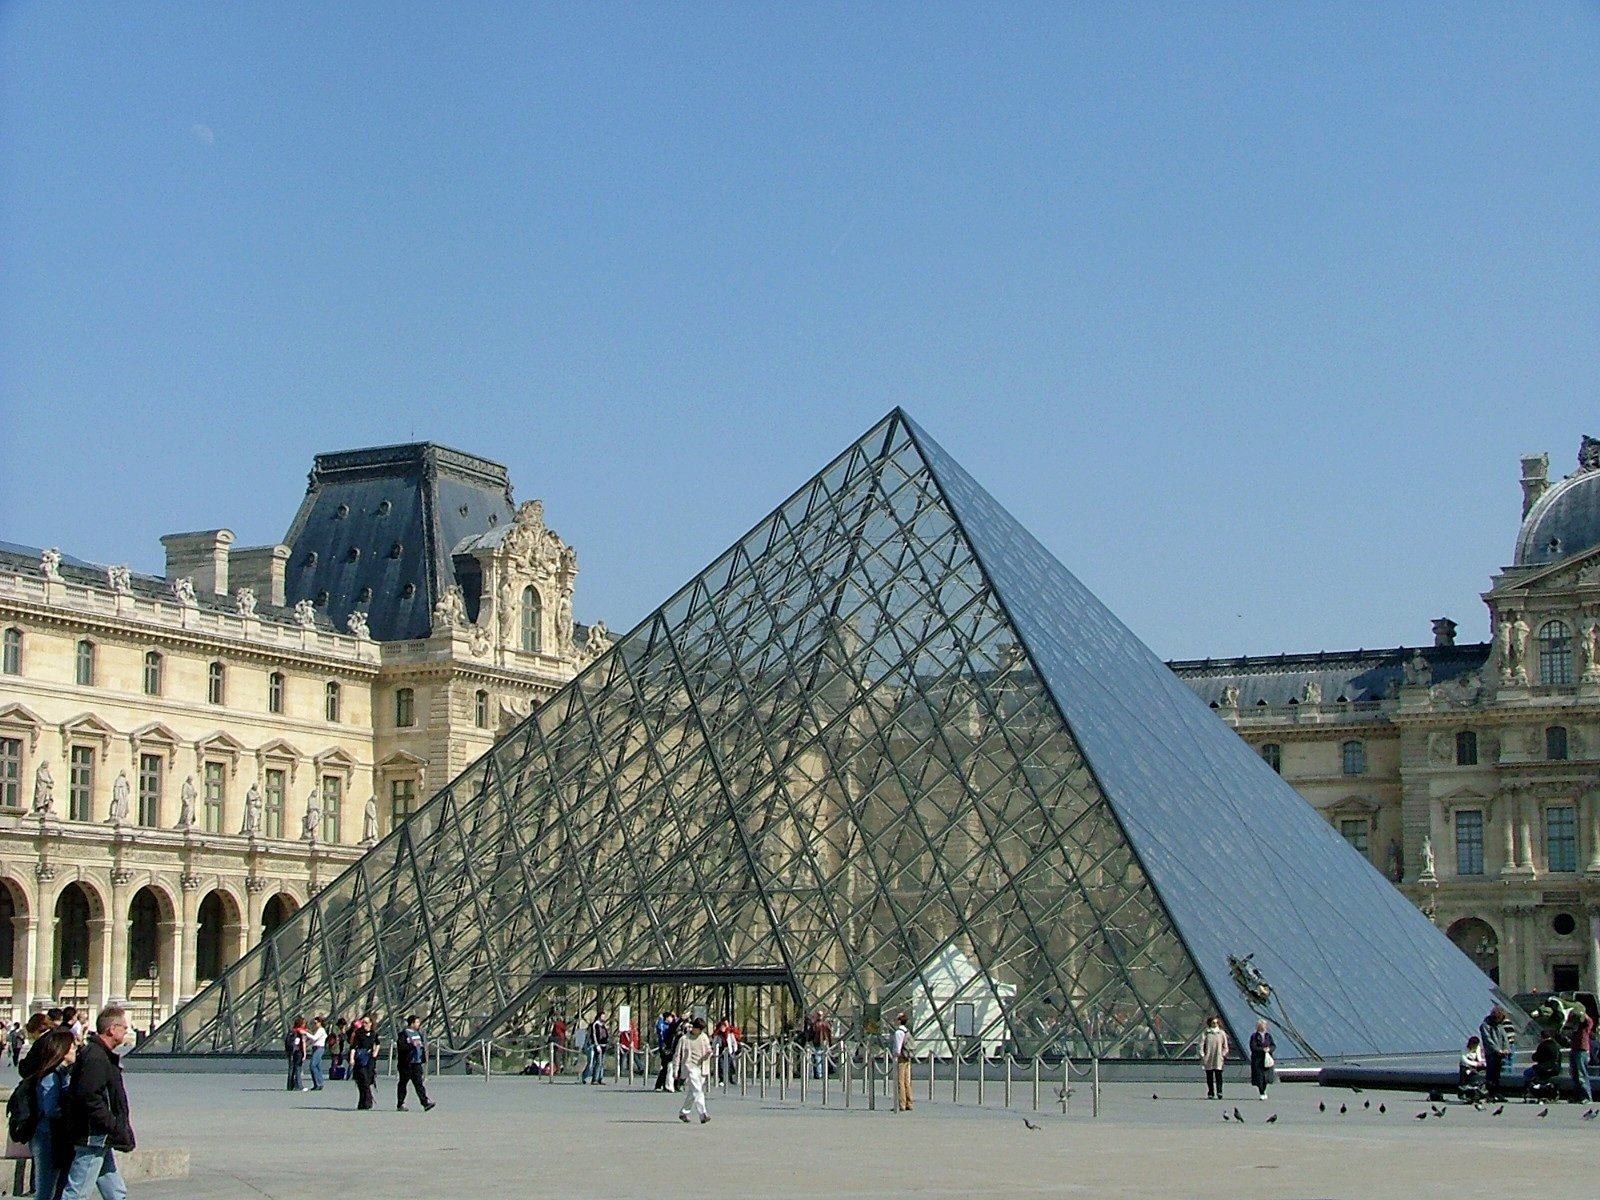 The louvre museum, things to do in paris france